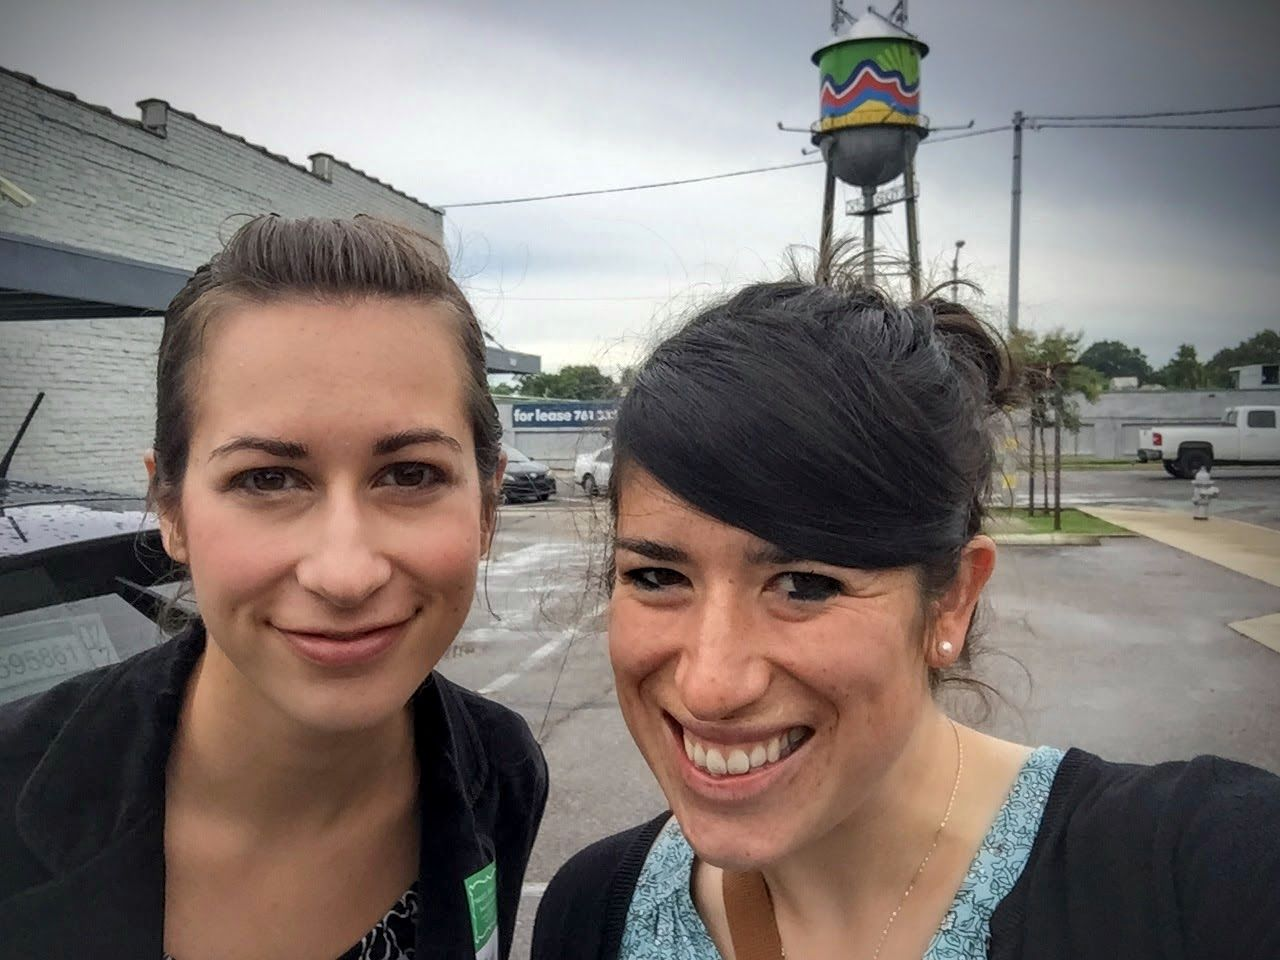 Of course, Sarah and I took a selfie after our tour concluded! We enjoyed touring (and eating) Muddy's, and we highly recommend that you schedule a tour!